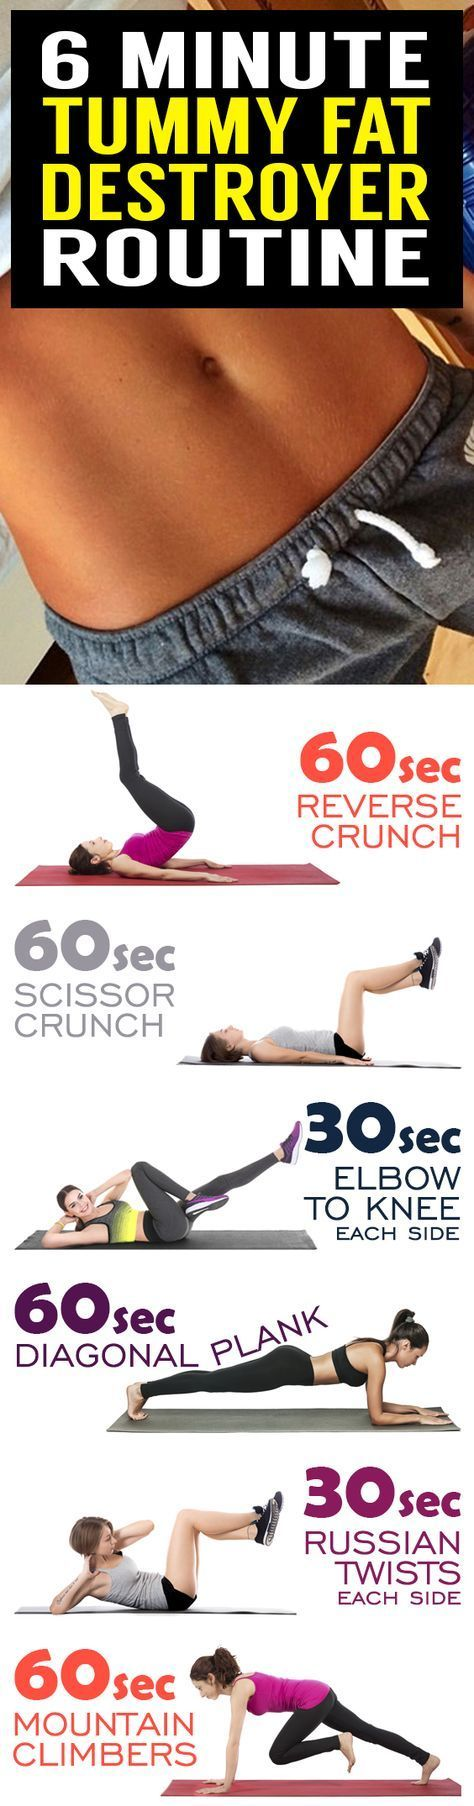 Summer's here and the heat is on to tighten up your tummy for the pool or beach. If you want your belly to be bikini-ready fast you need exercises that engage all your abdominal muscles. This killer tummy-cinching routine works magic on muffin tops and th